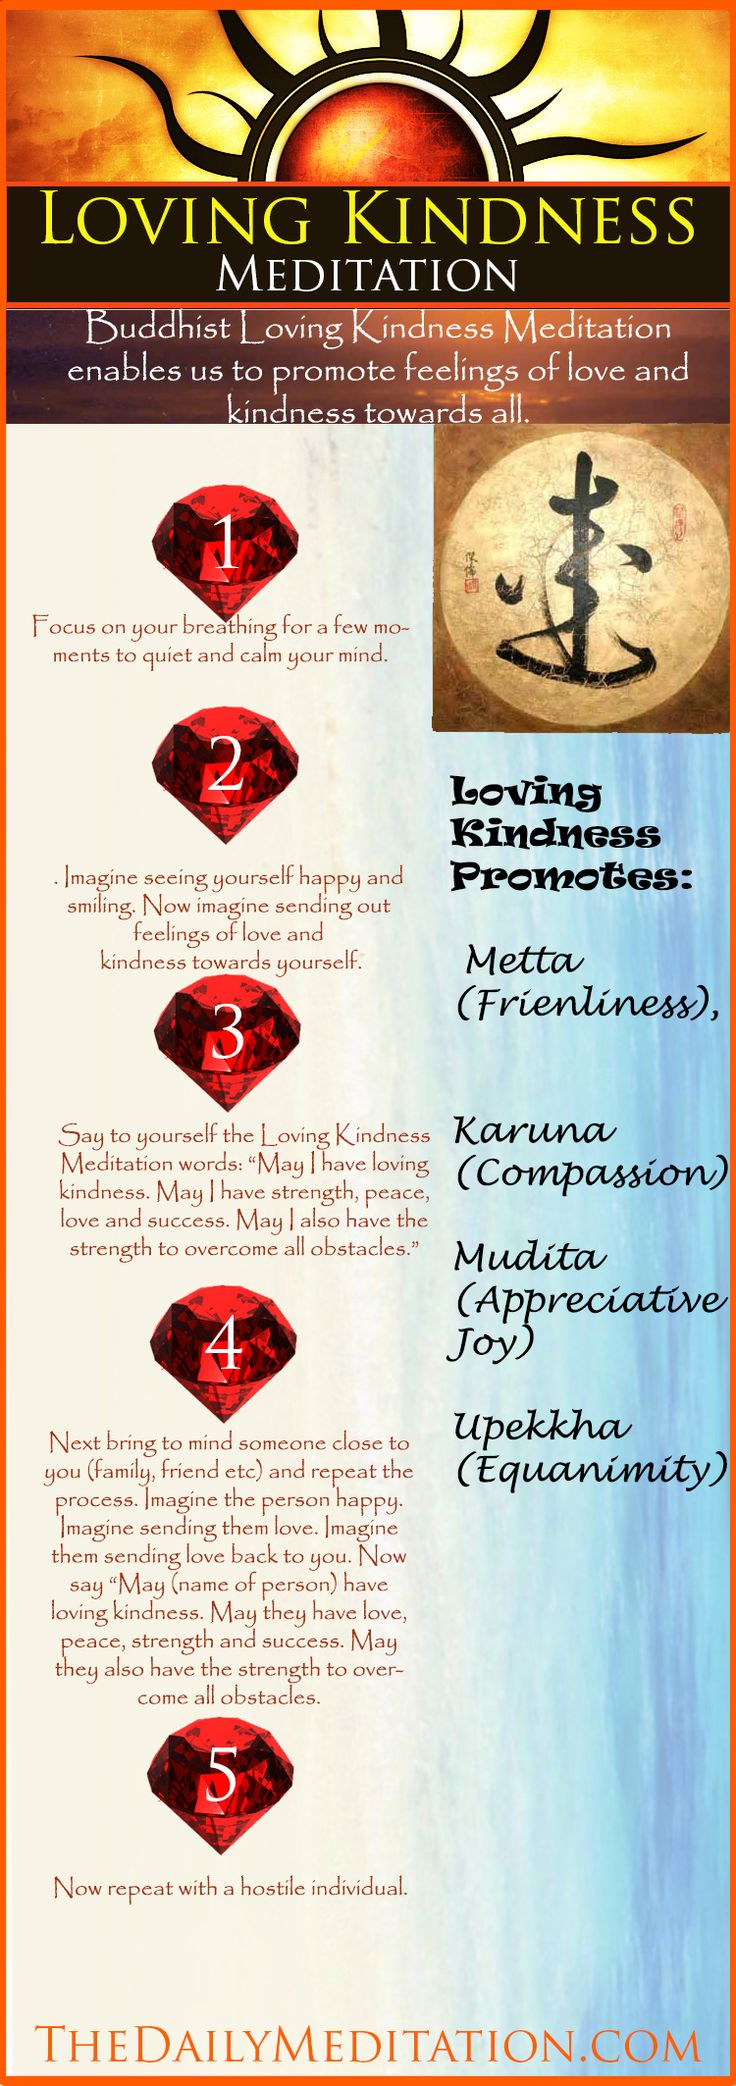 Infographic showing loving kindness meditation instructions